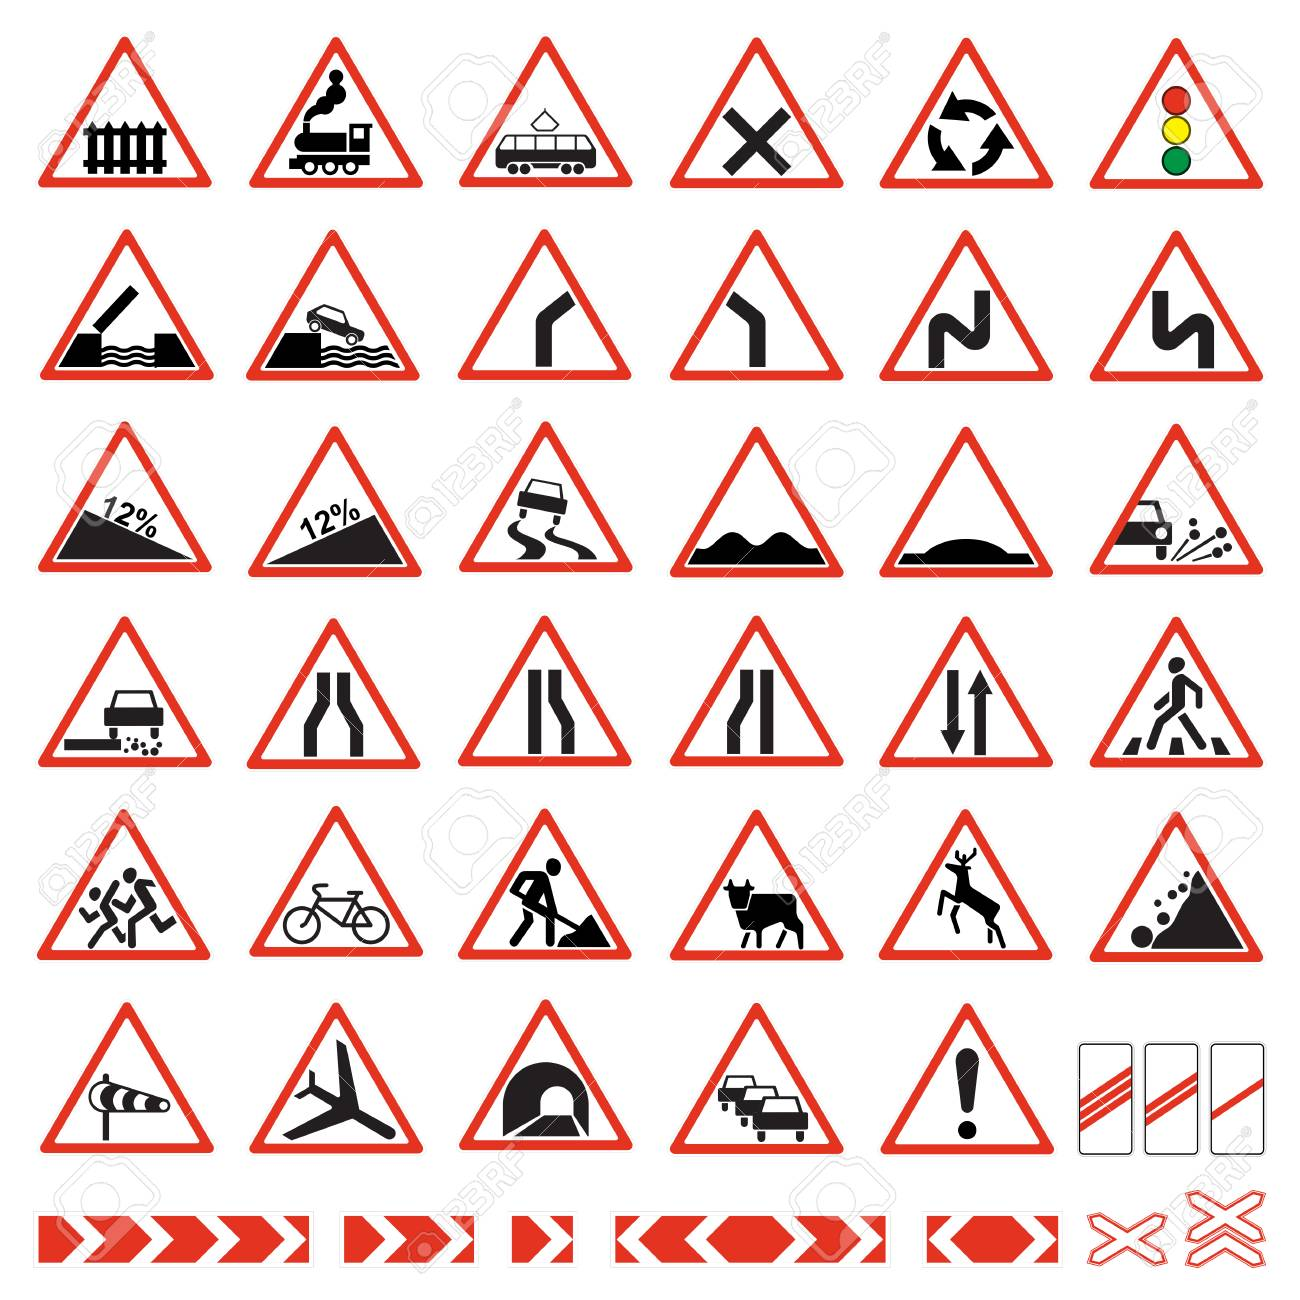 Road signs set. Warning traffic signs collection. - 117029649